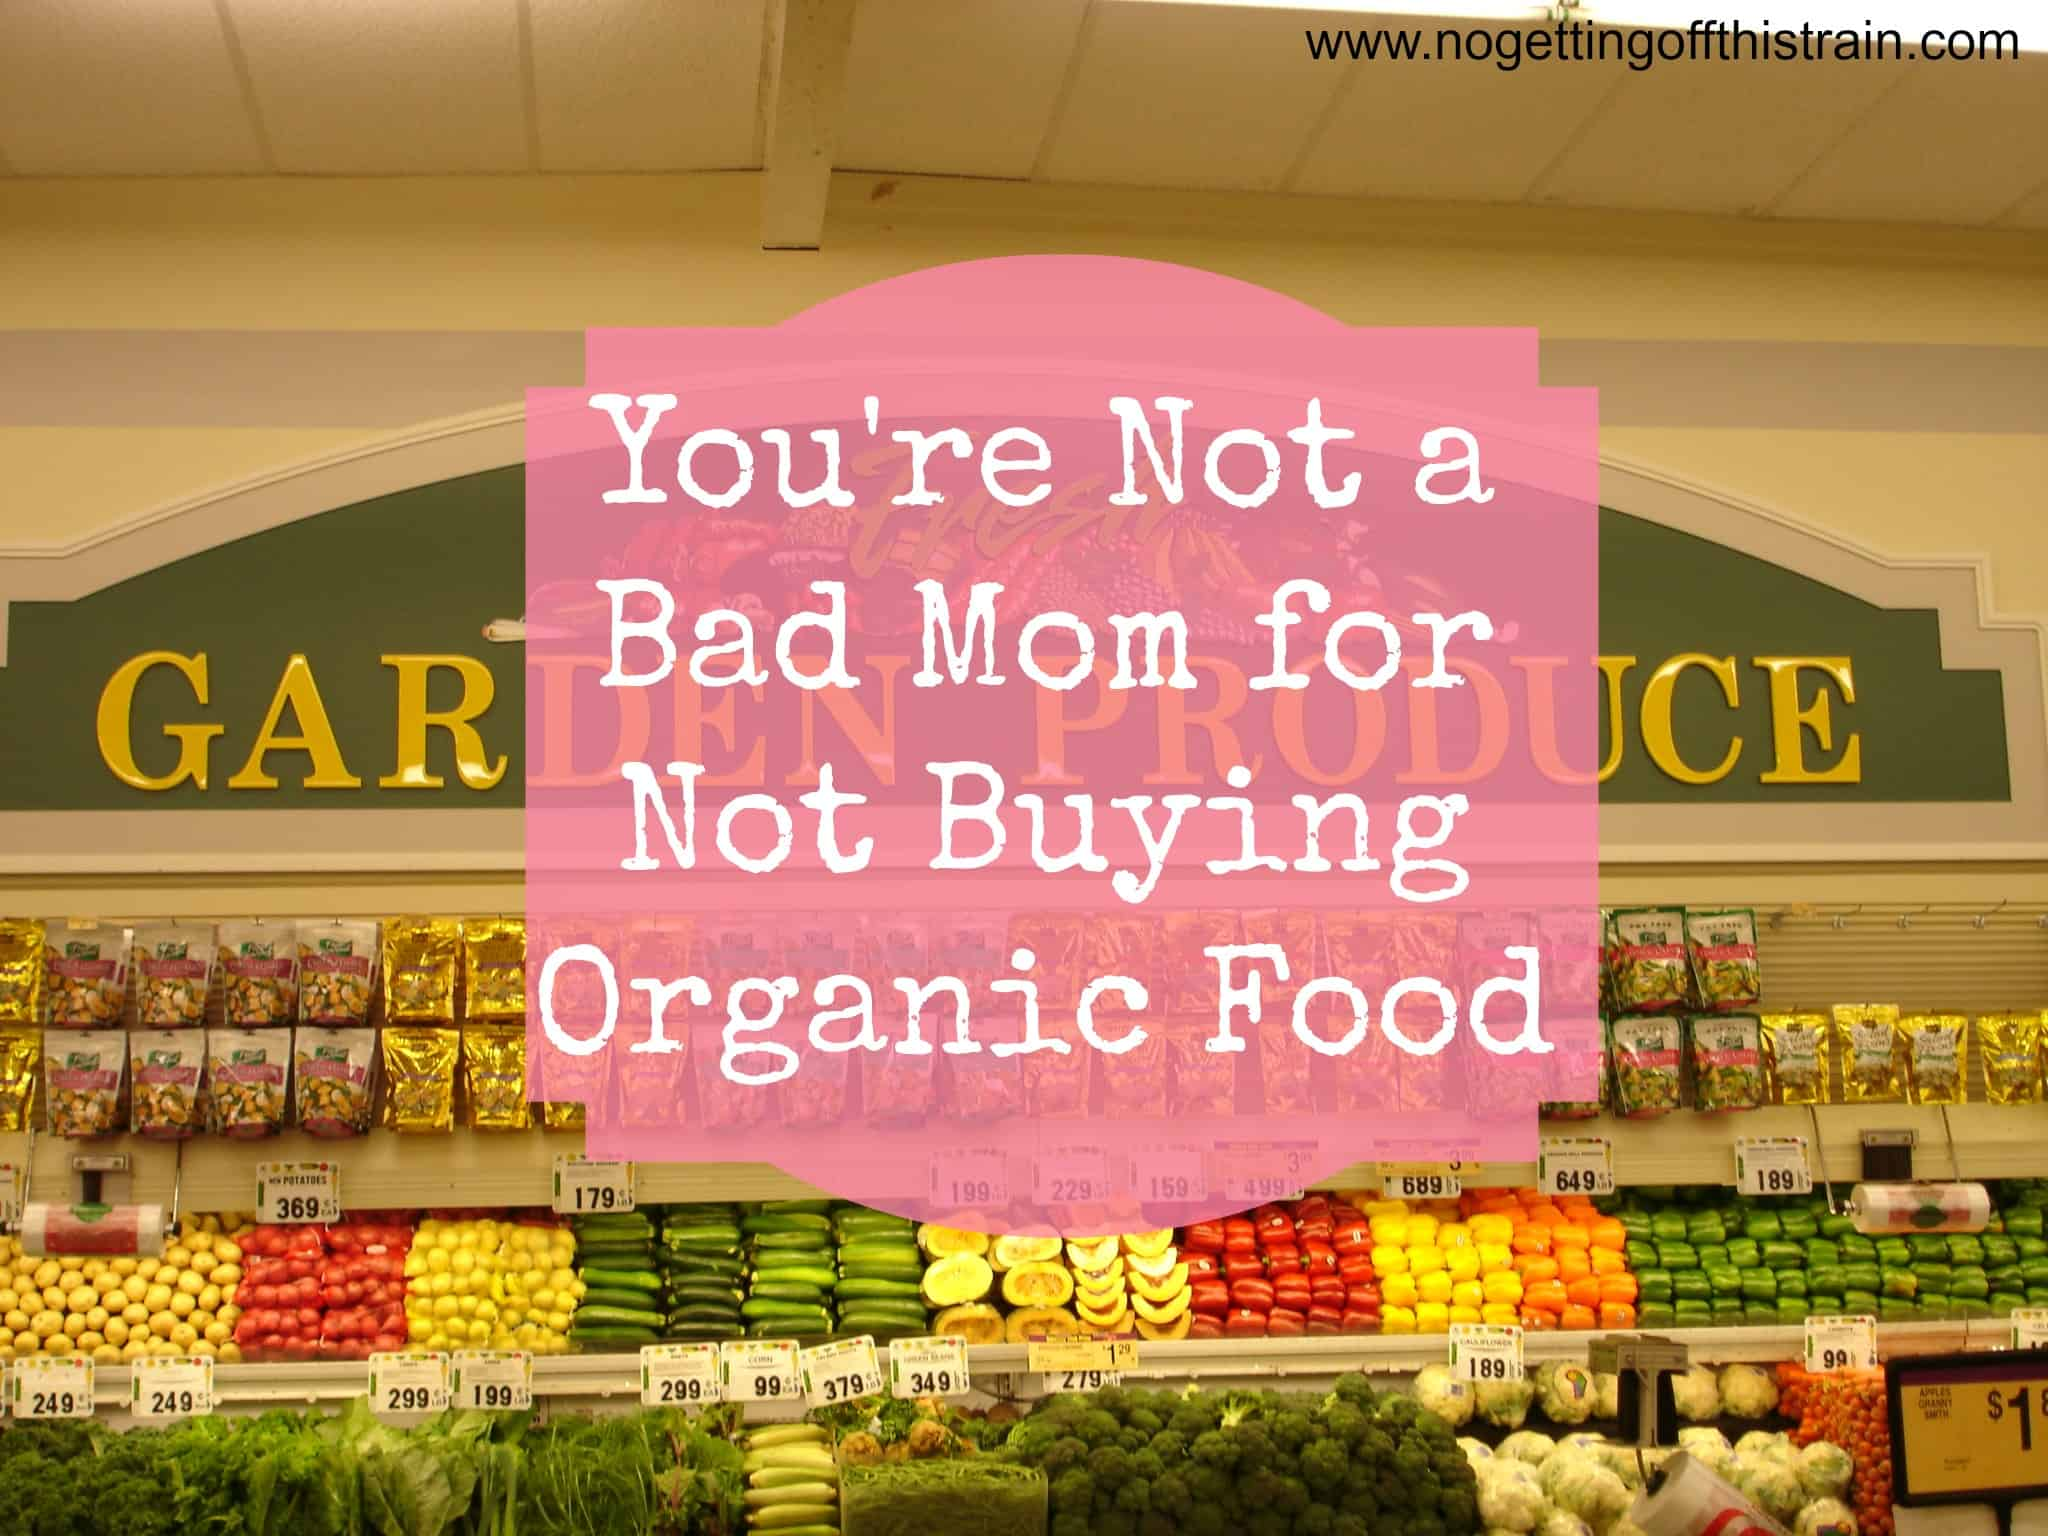 You're Not a Bad Mom for Not Buying Organic Food